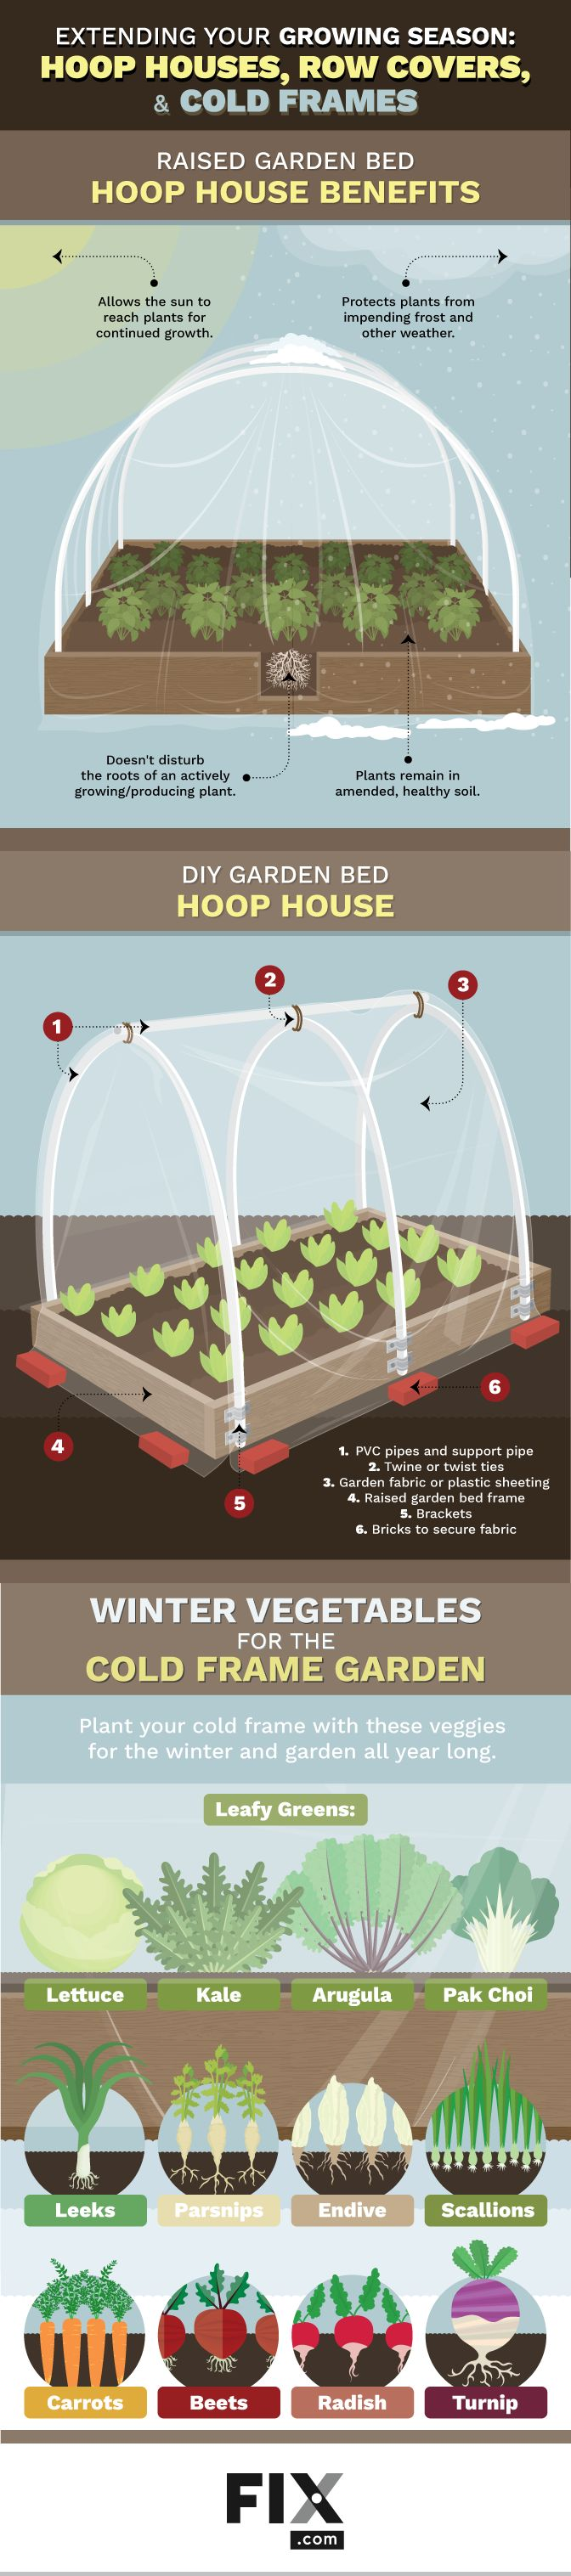 Extend your growing season. Take some time to plan and build a hoop house, row covers, or cold frames. These enclosures will help you plant earlier and harvest later.